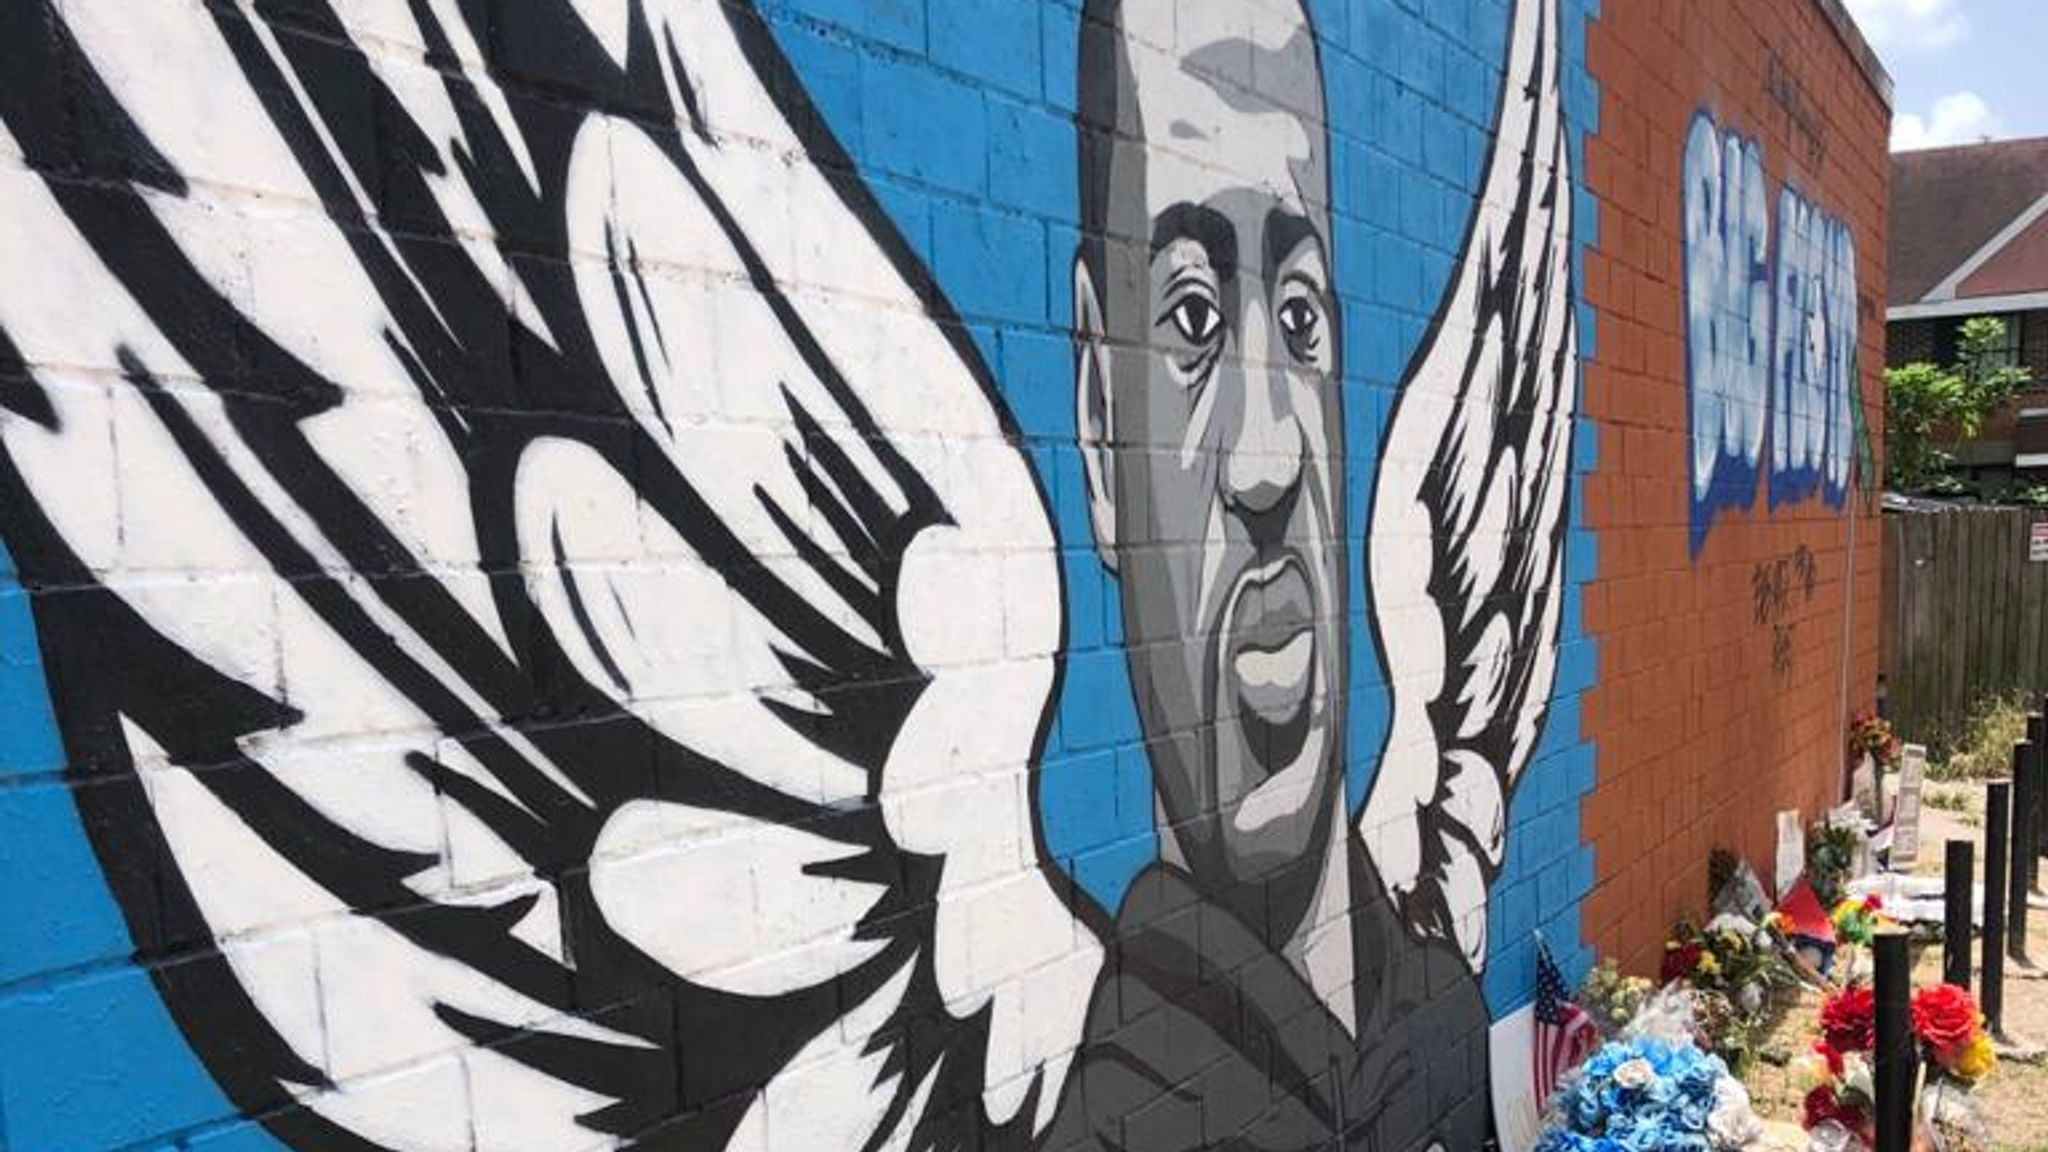 A graffiti memorial to George Floyd, who grew up in Houston